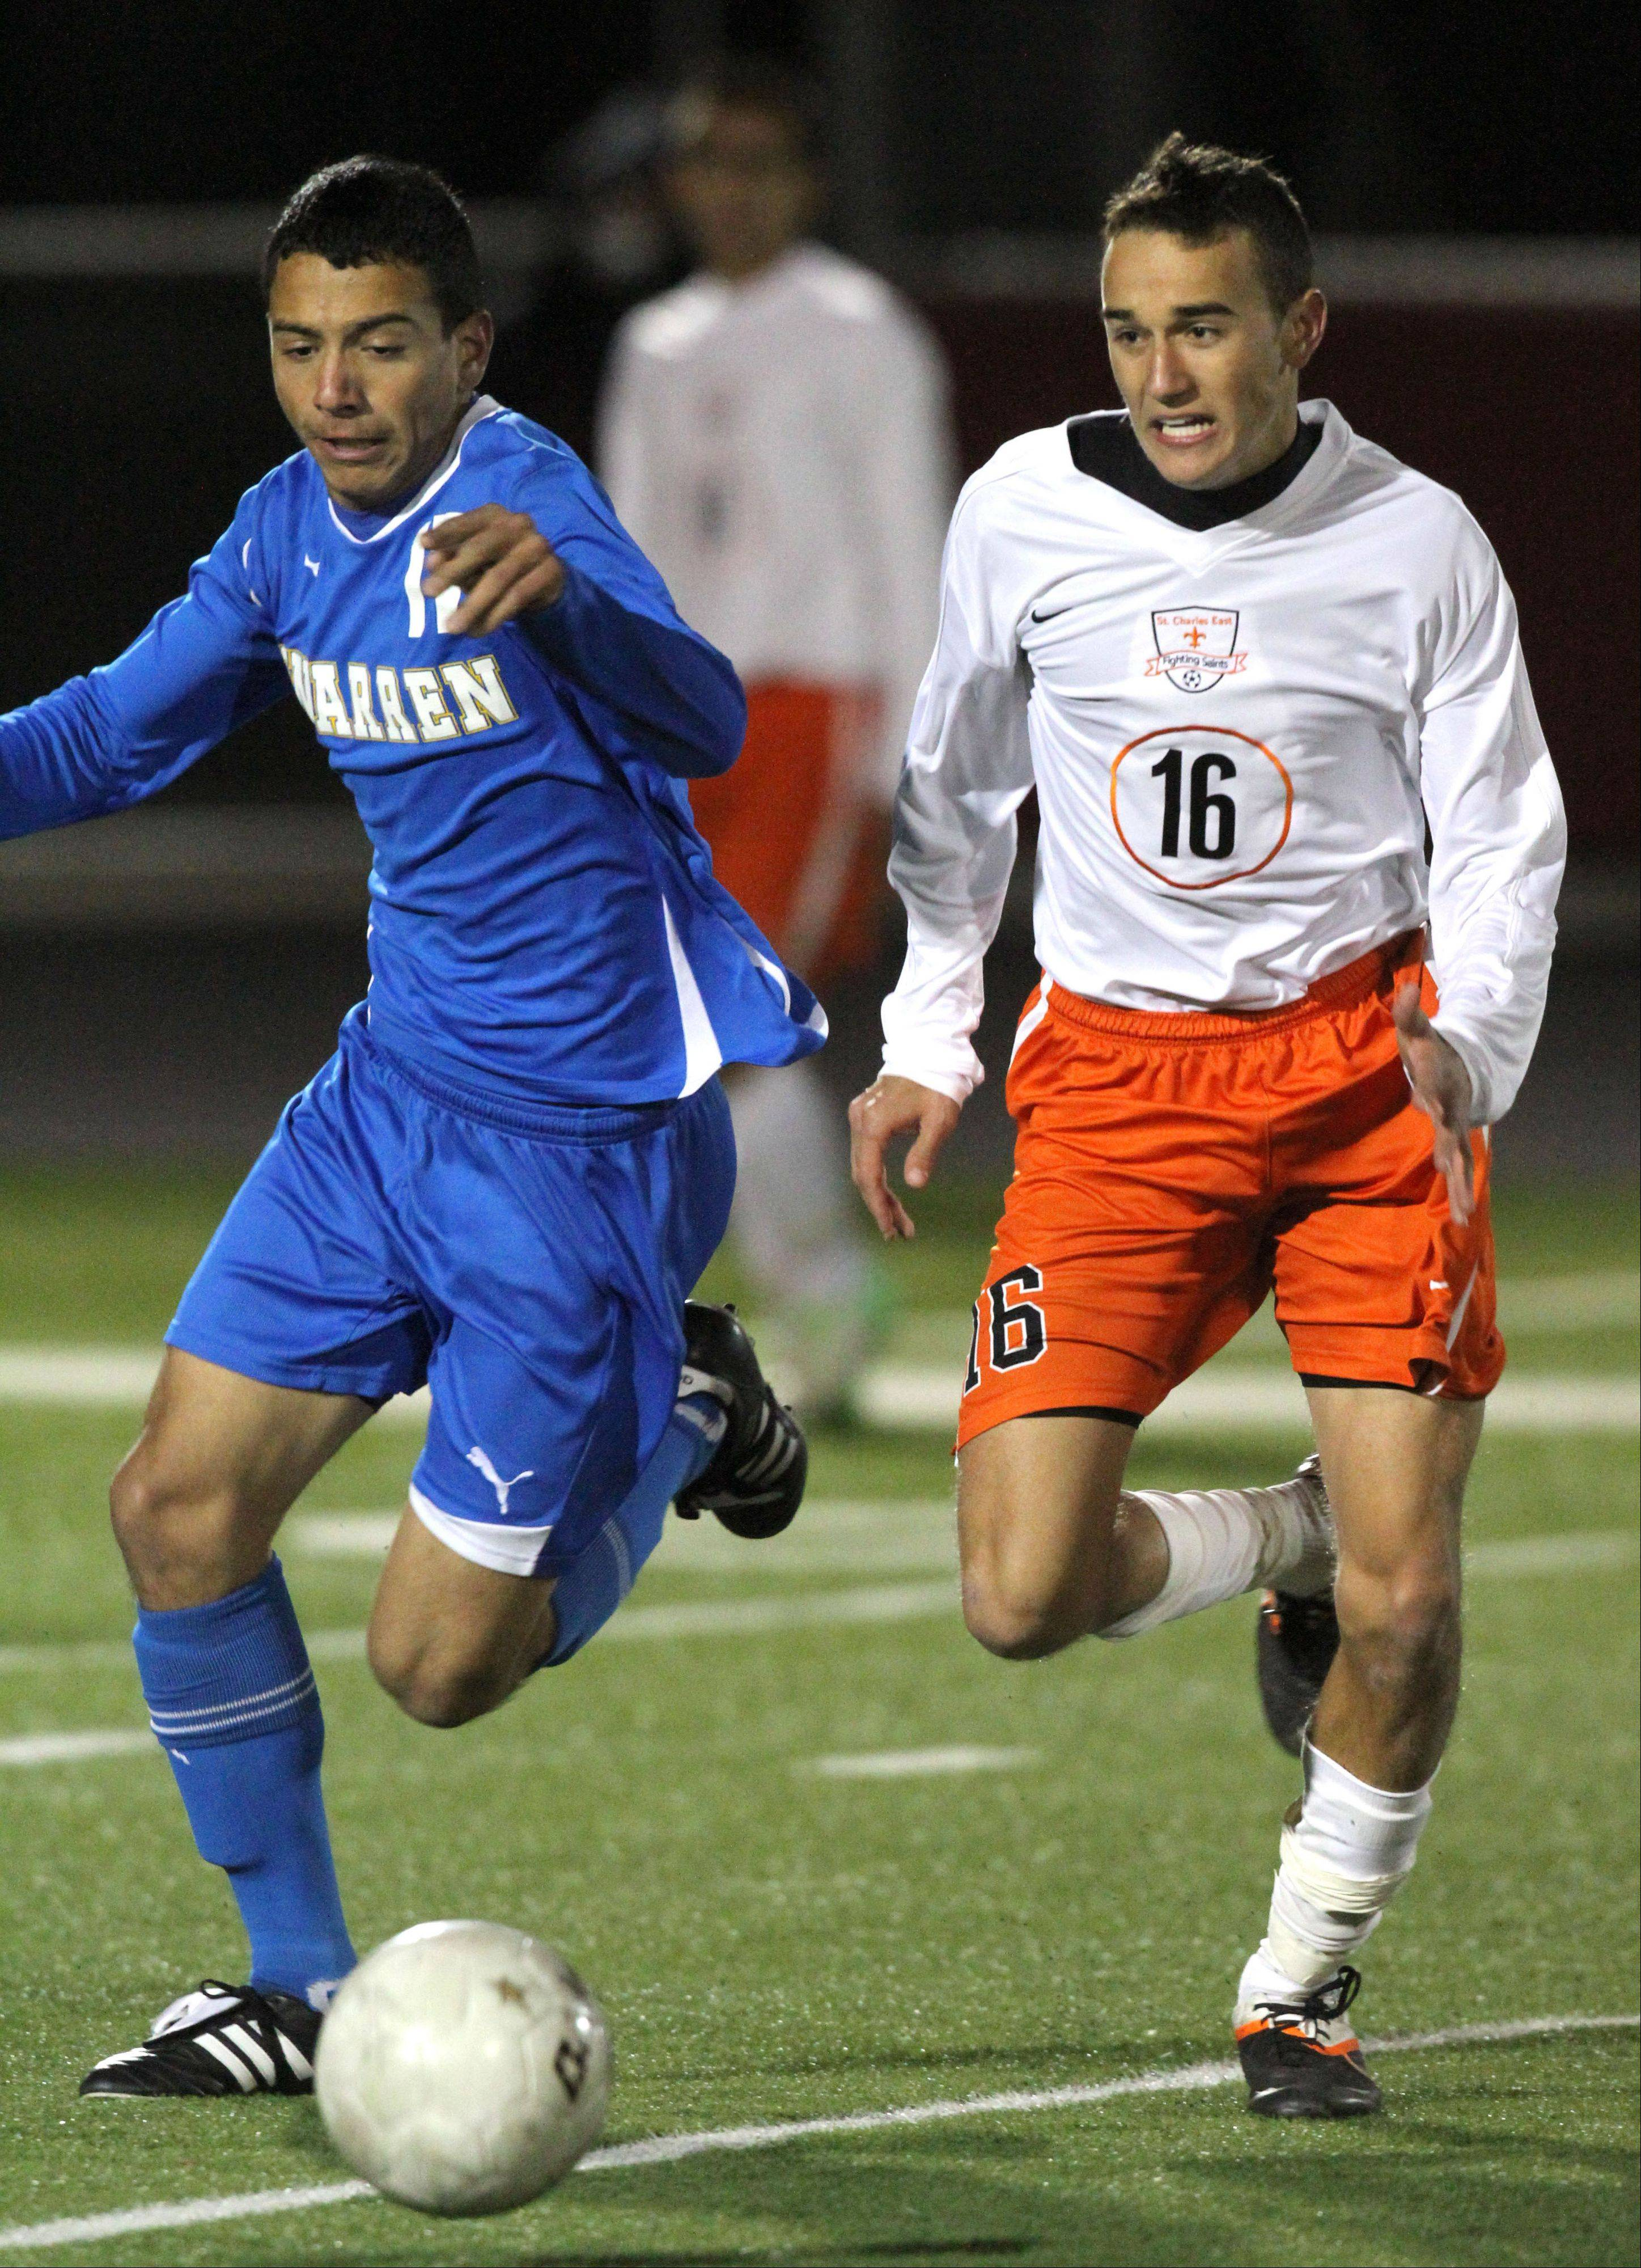 Warren's Rafa Macias, left, and St. Charles East's Jordan Moore battle for the ball during super sectional soccer action Tuesday night at Barrington High School.